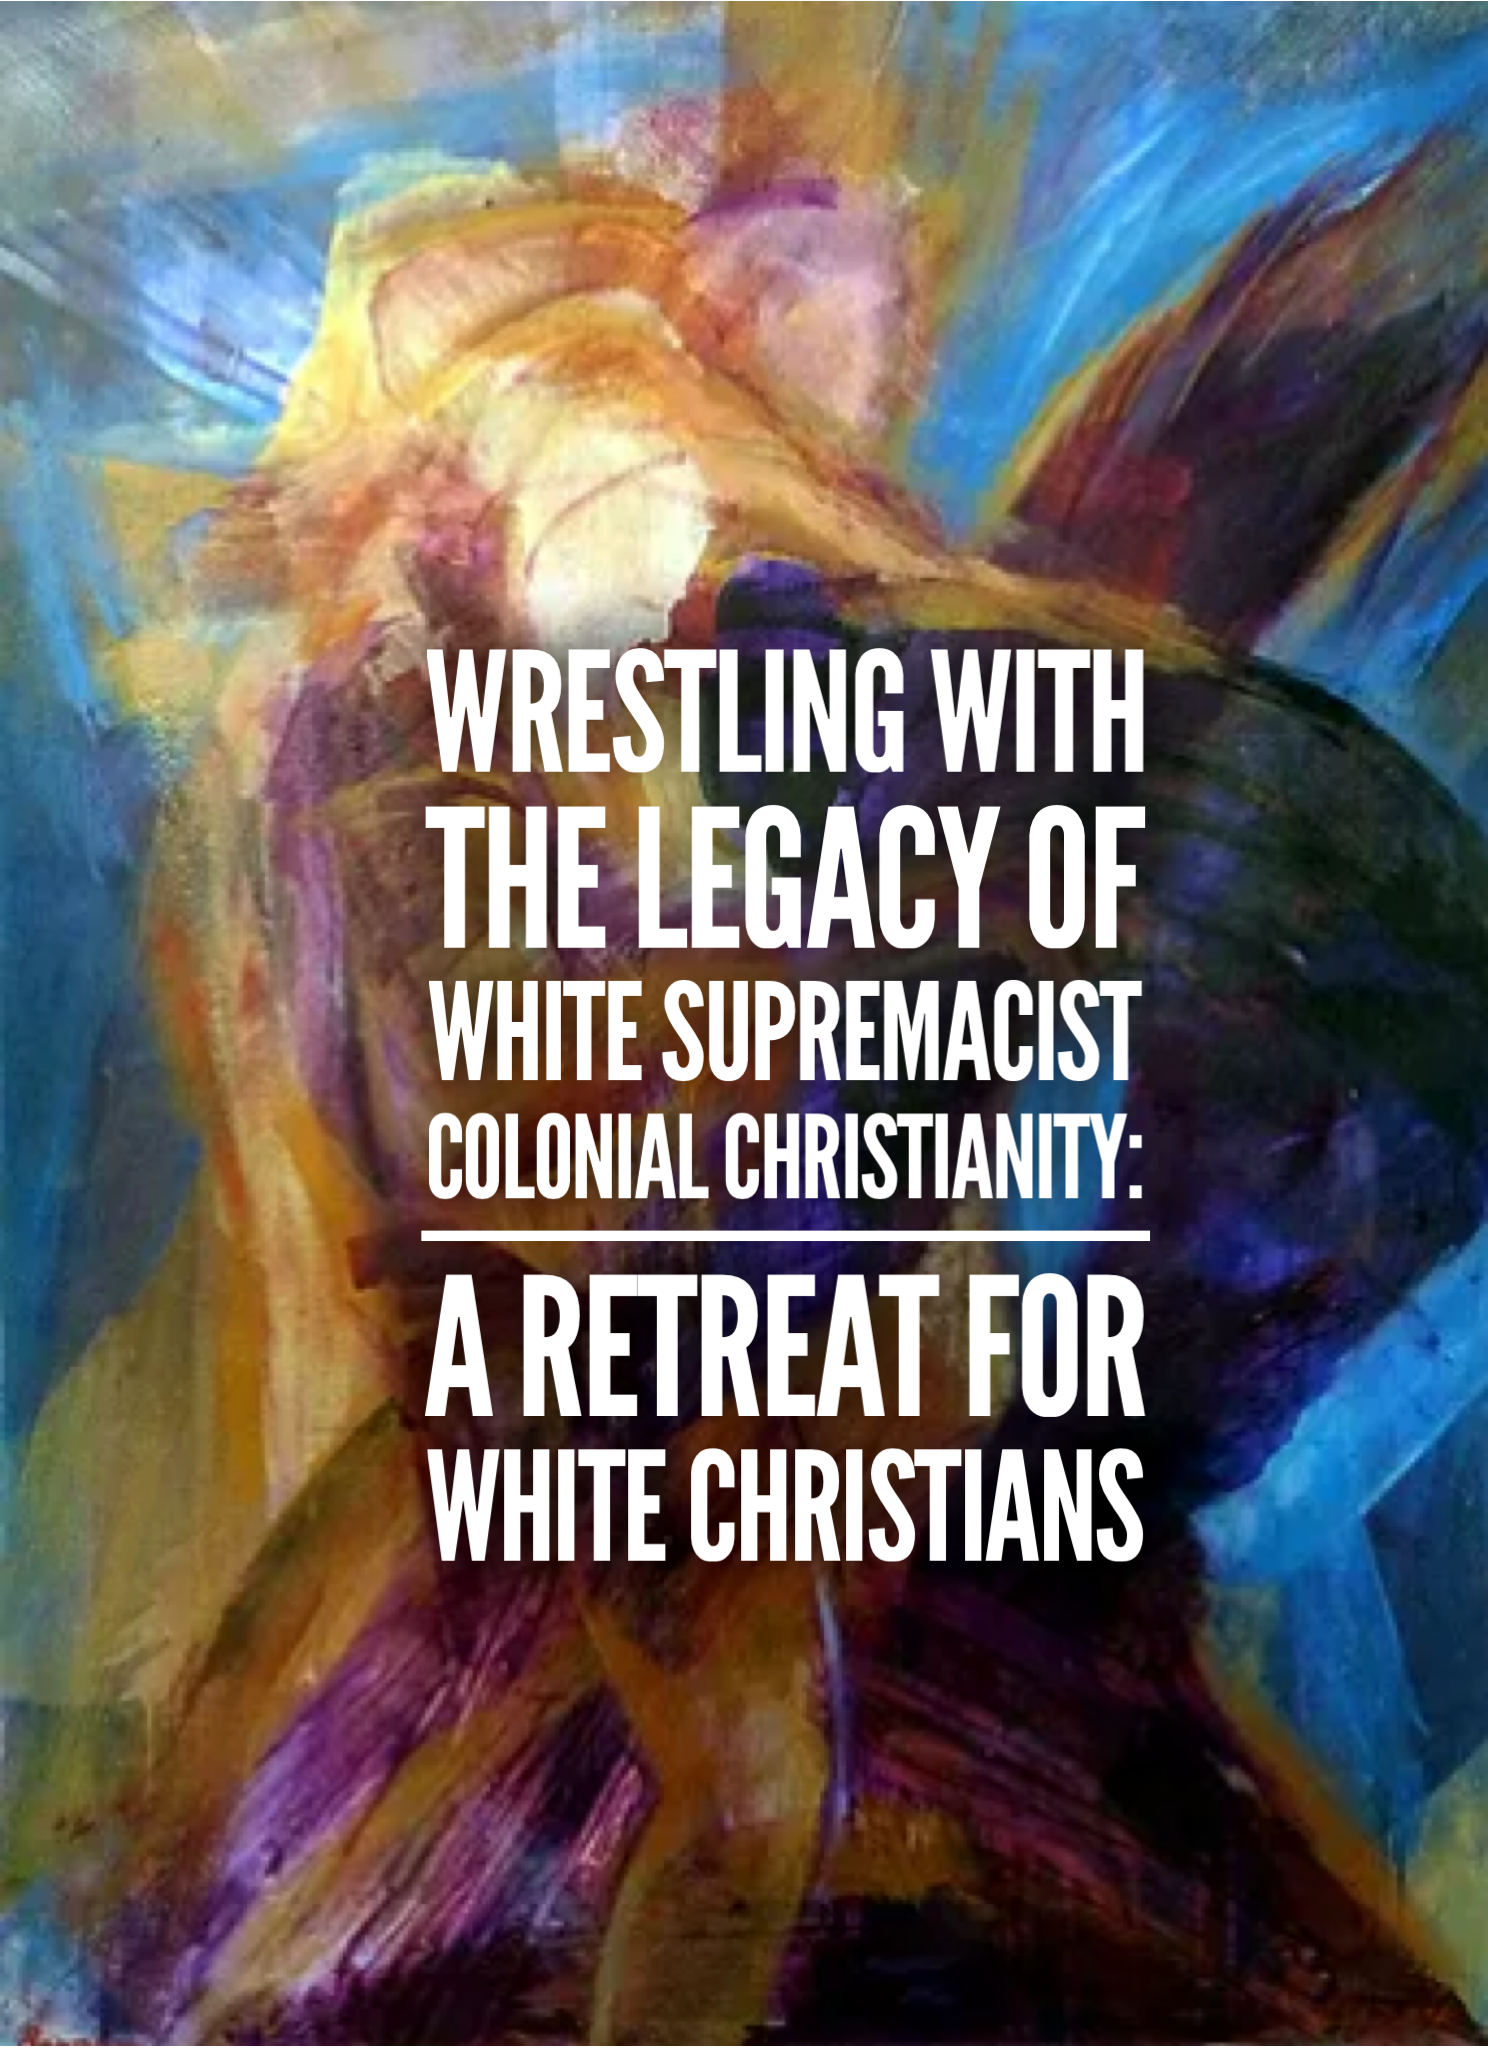 Wrestling with the Legacy of White Supremacist Colonial Christianity: a Retreat for White Christians